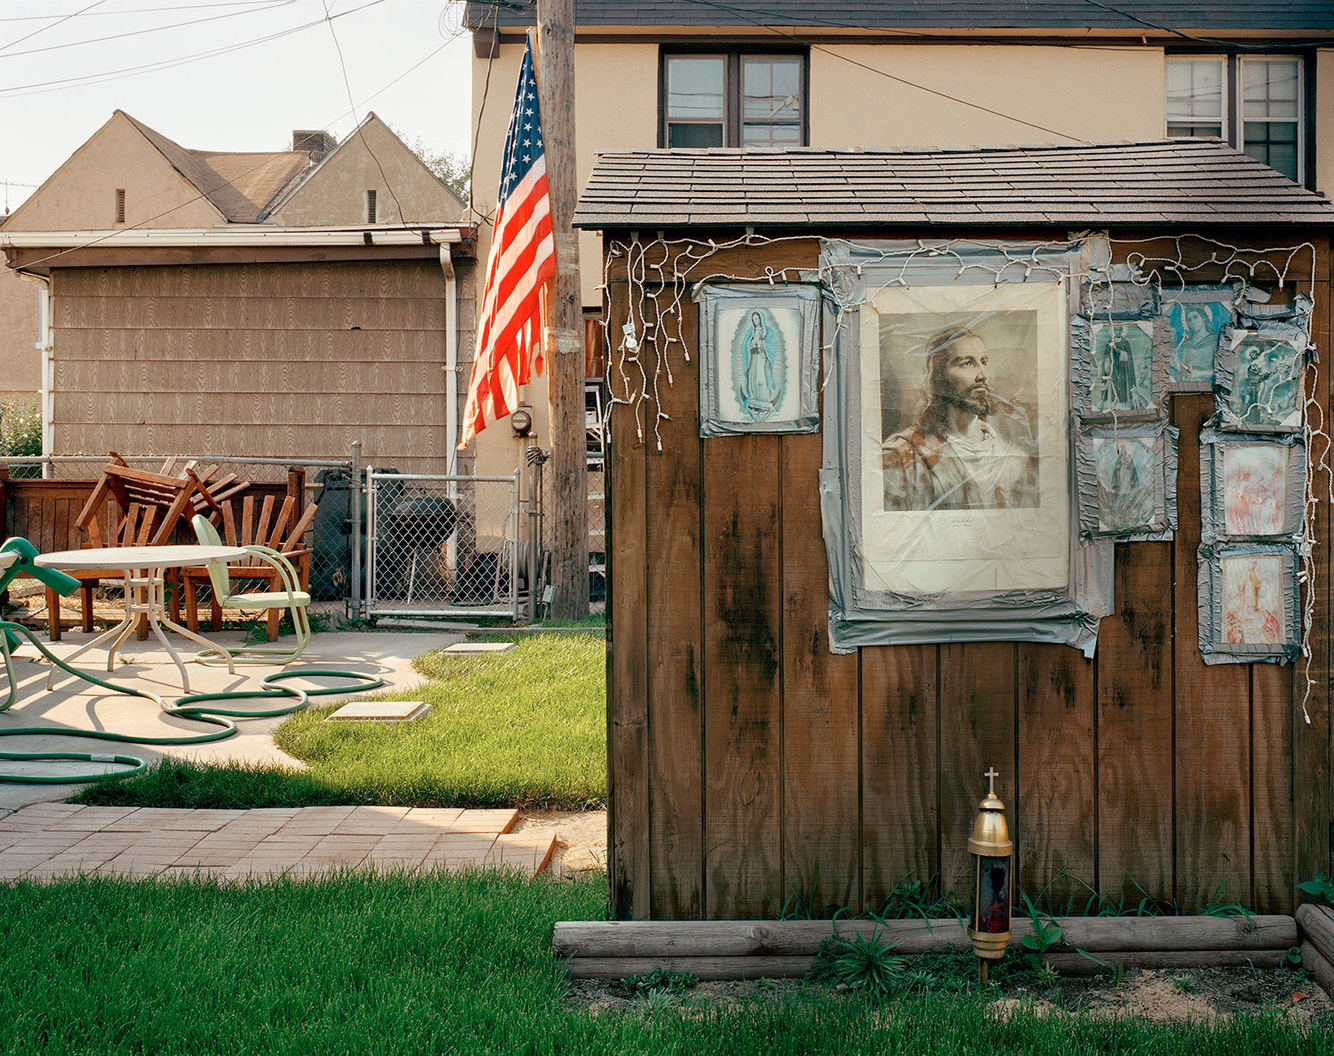 Jesus on Shed, Marktown, East Chicago IN 2003